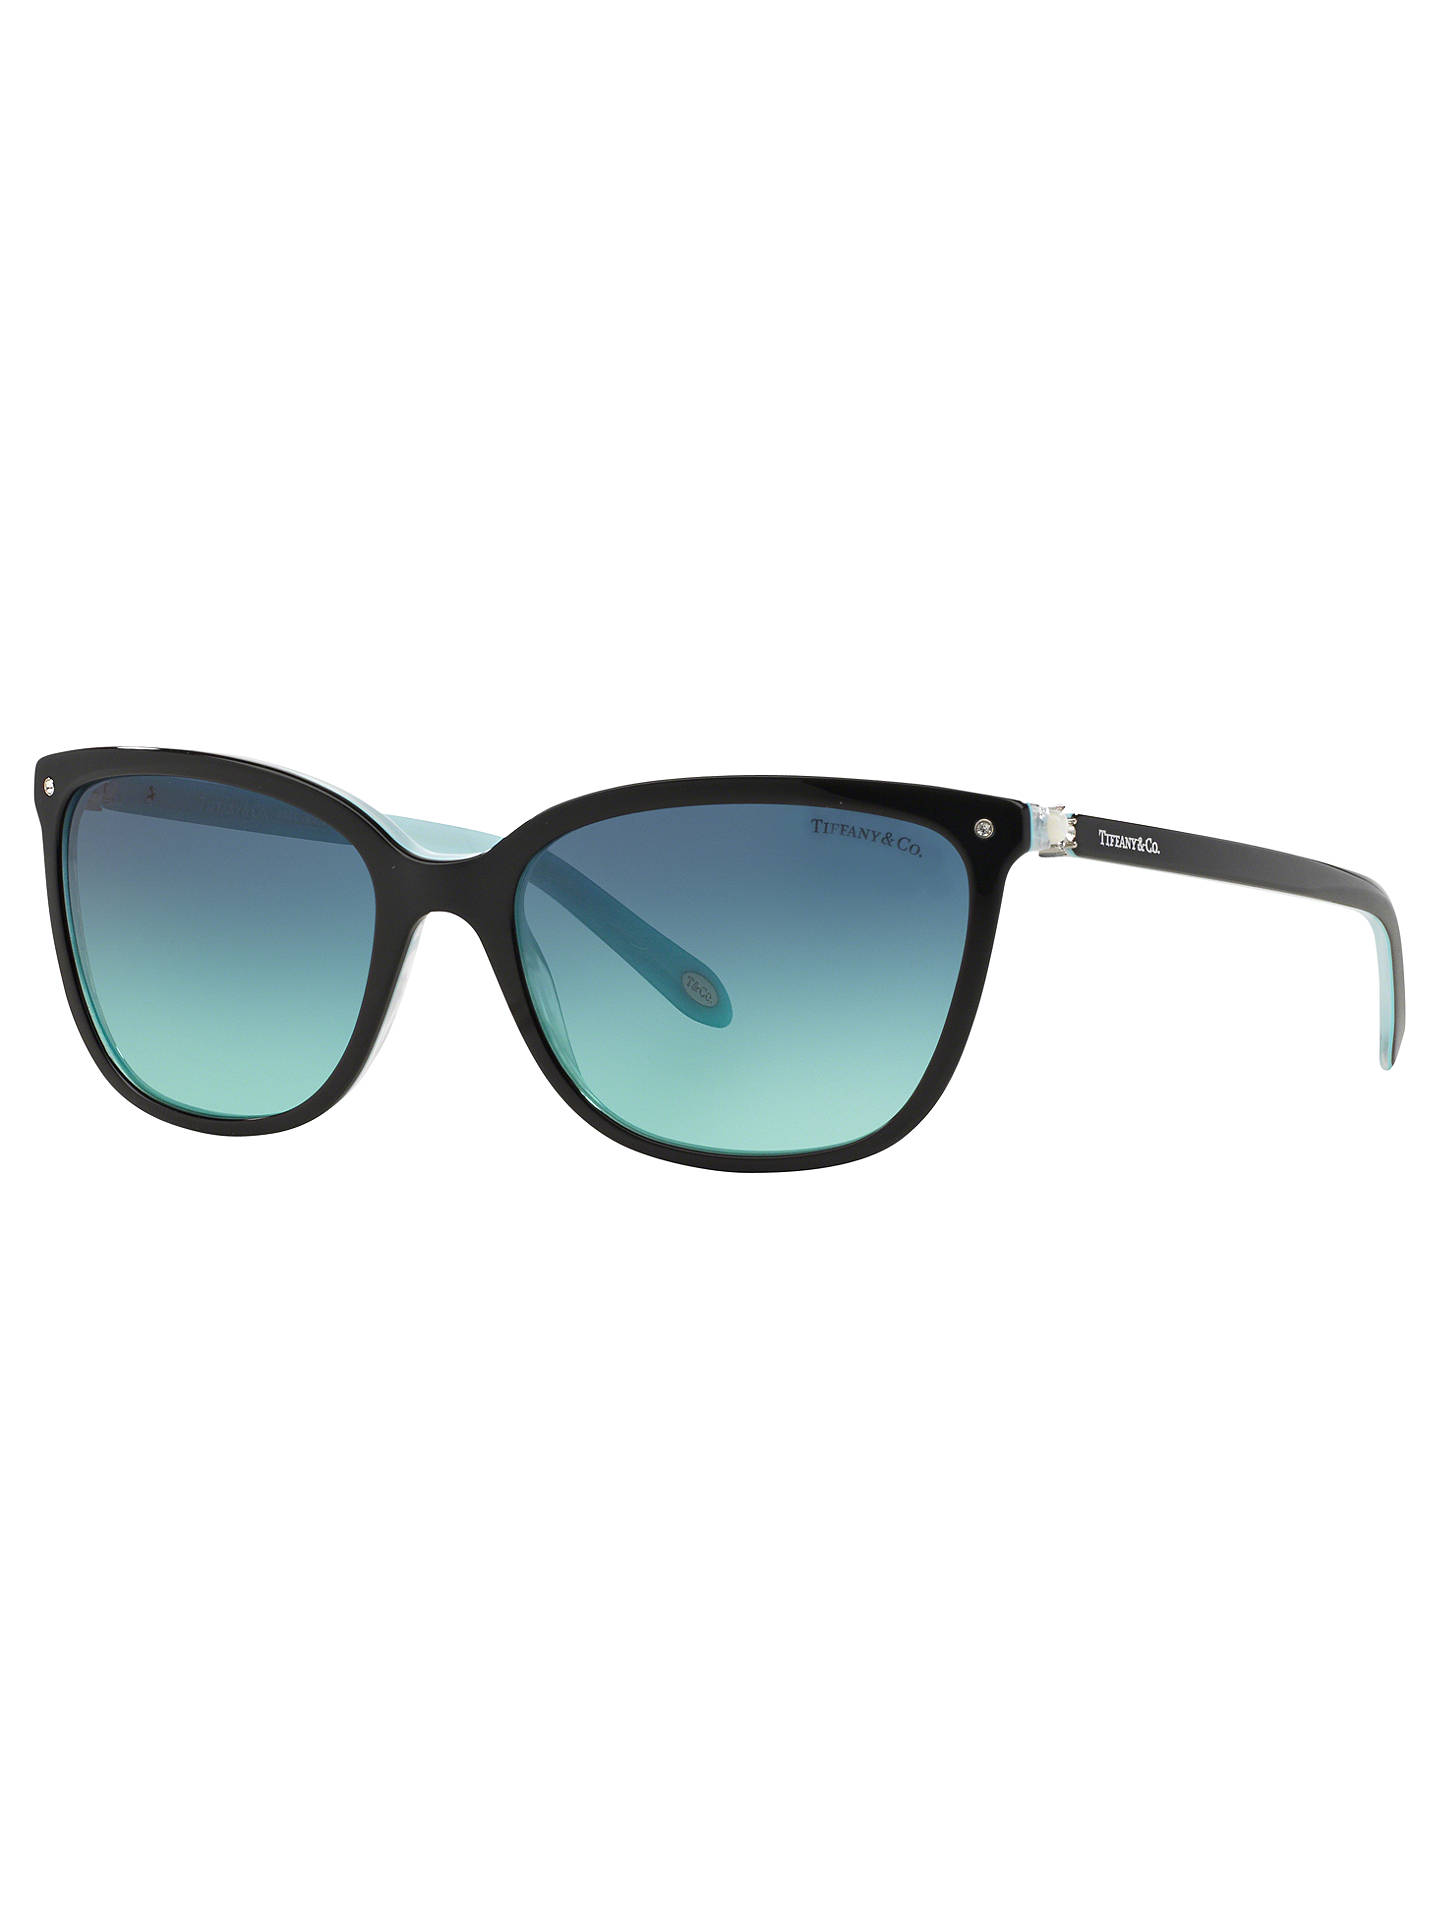 6f04726735f Tiffany   Co TF4105HB Square Sunglasses at John Lewis   Partners